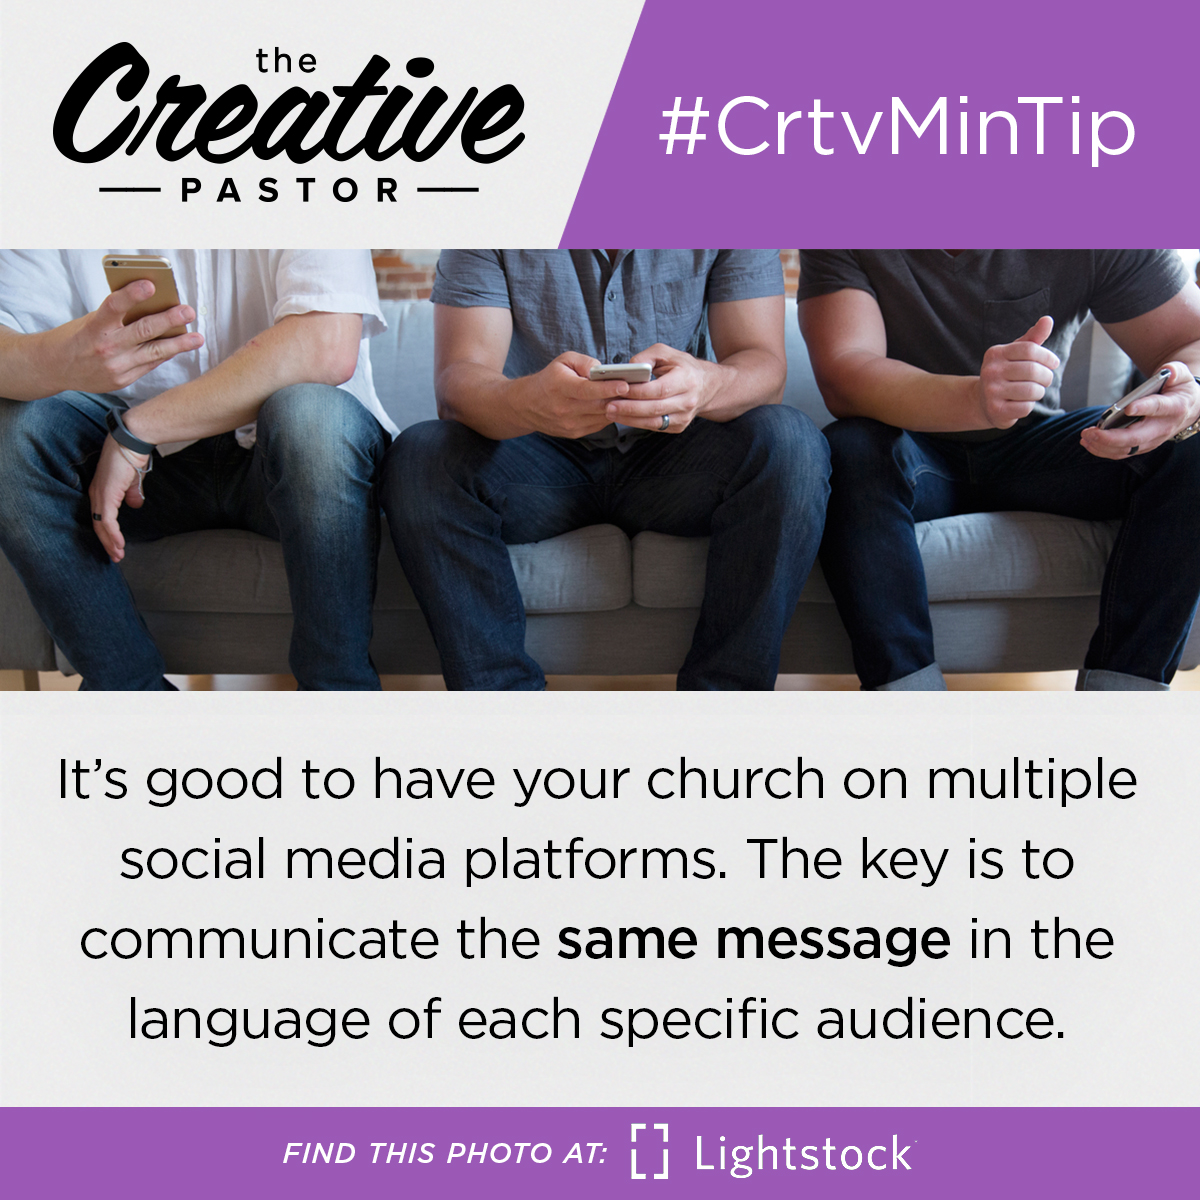 #CrtvMinTip: It's good to have your church on multiple social media platforms. The key is to communicate the same message in the language of each specific audience.